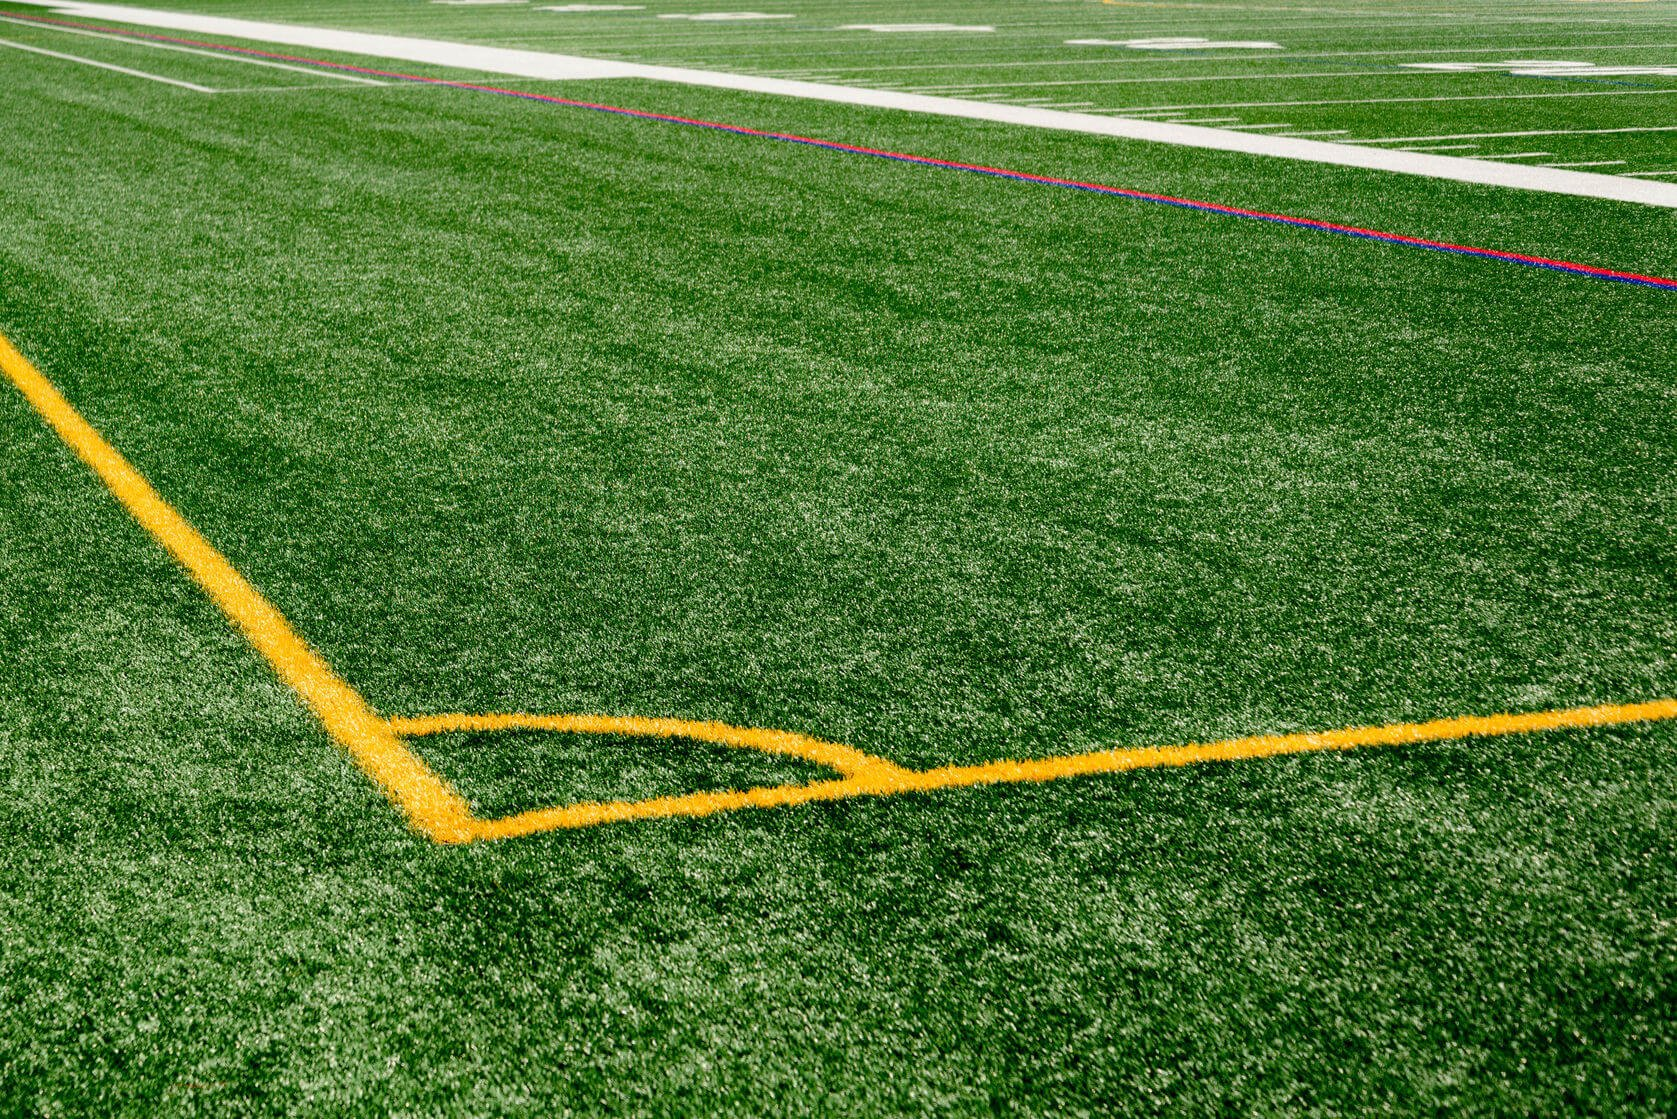 Artificial Turf Cancer Lawsuit: Toxic Compounds May be Linked to Cancer